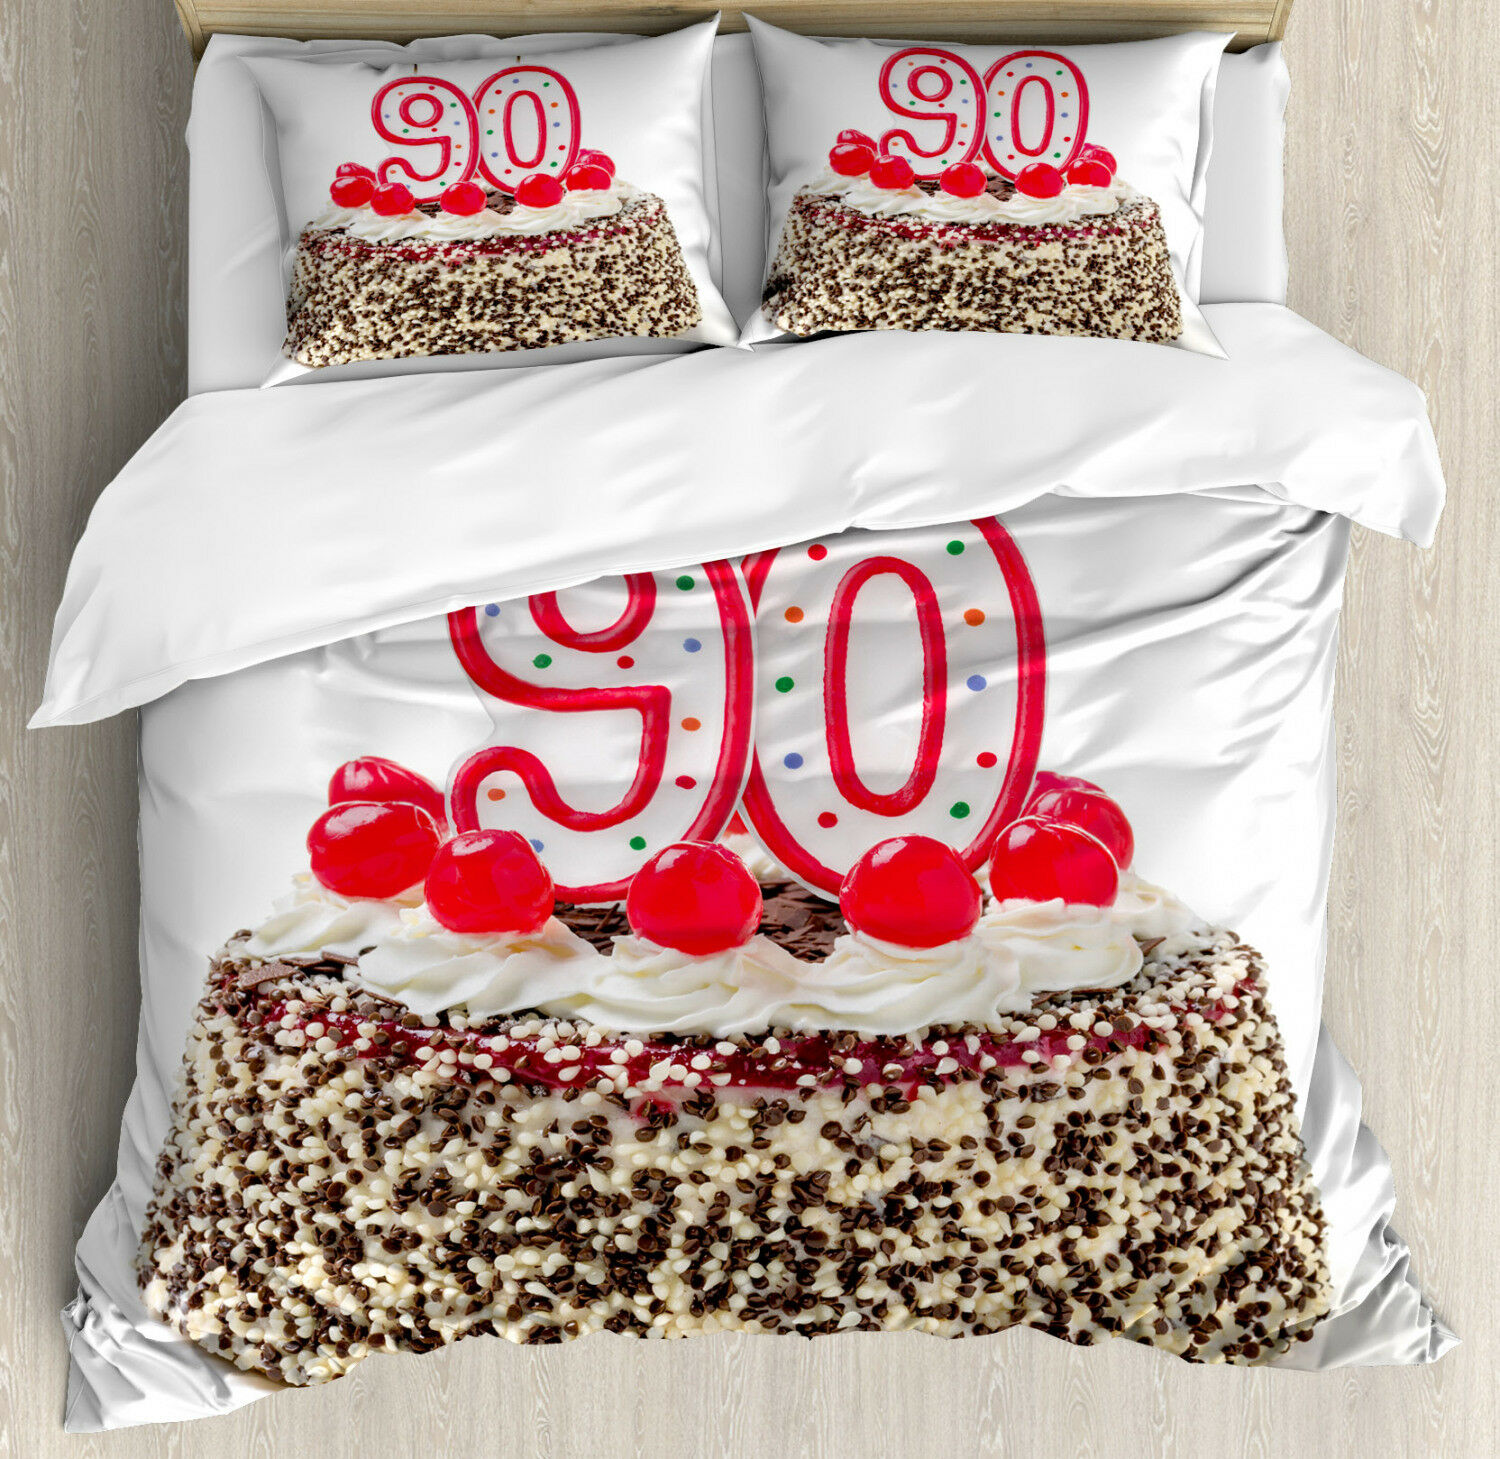 Party Duvet Cover Set with Pillow Shams Tasty Cherries Candles Print